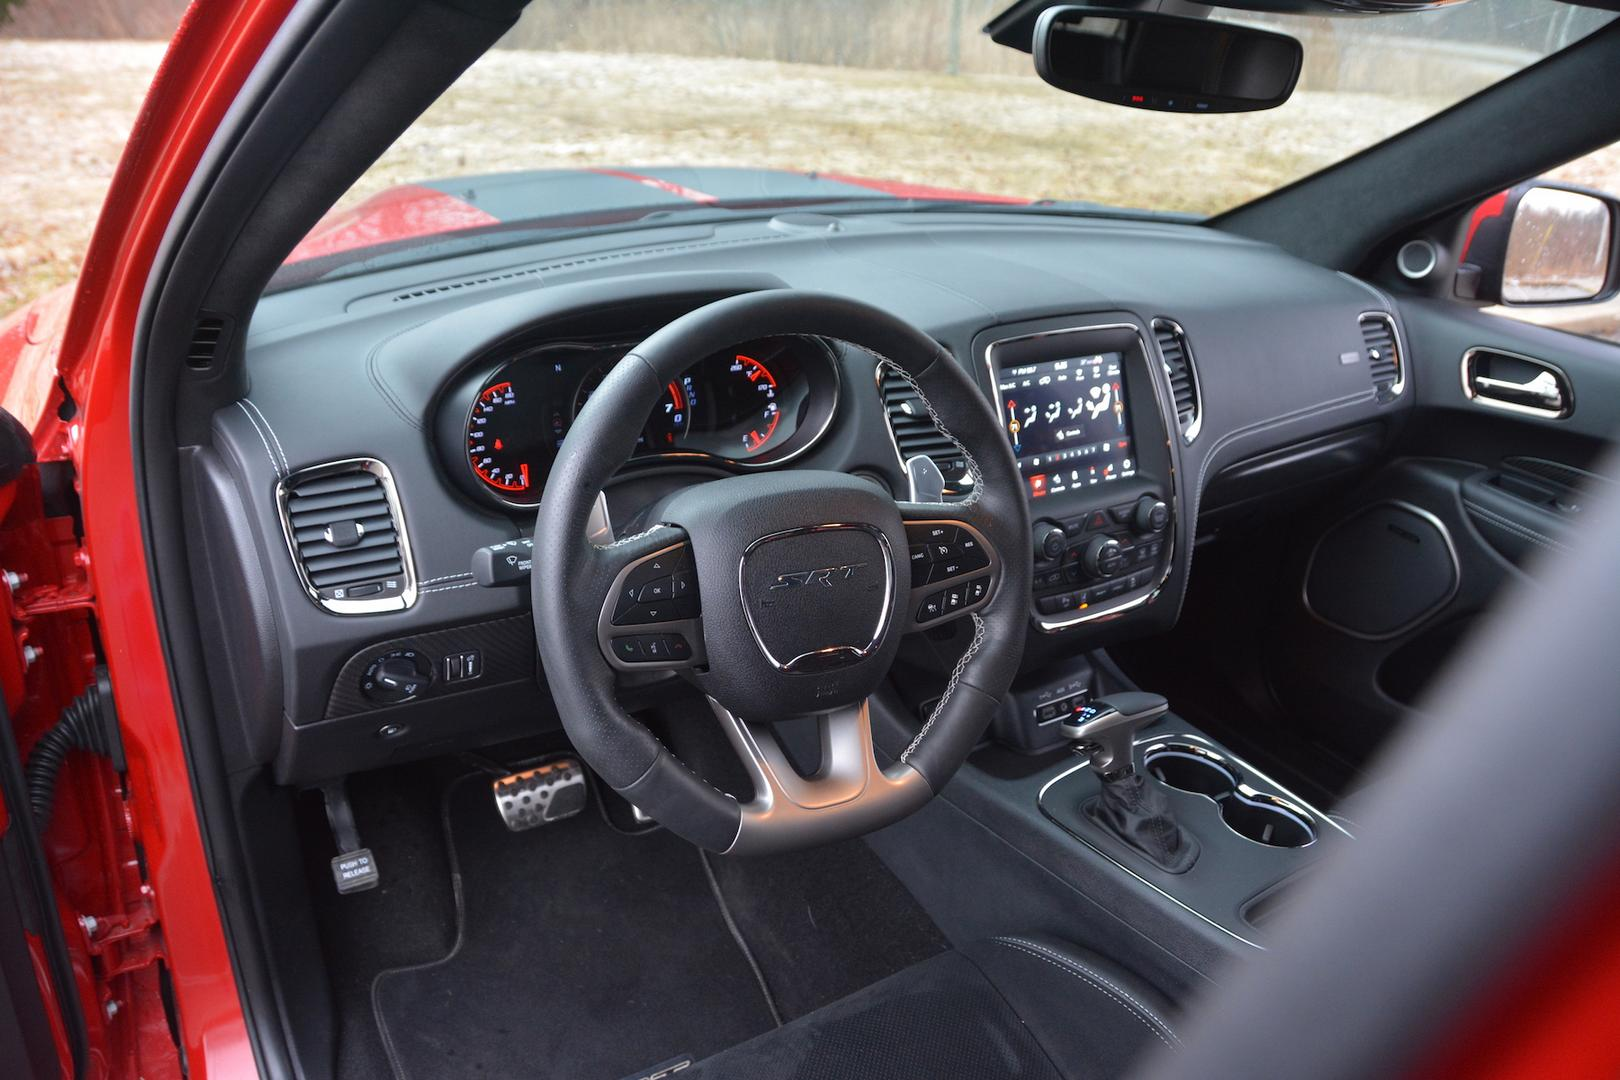 2020 Dodge Durango SRT 392 Steering Wheel